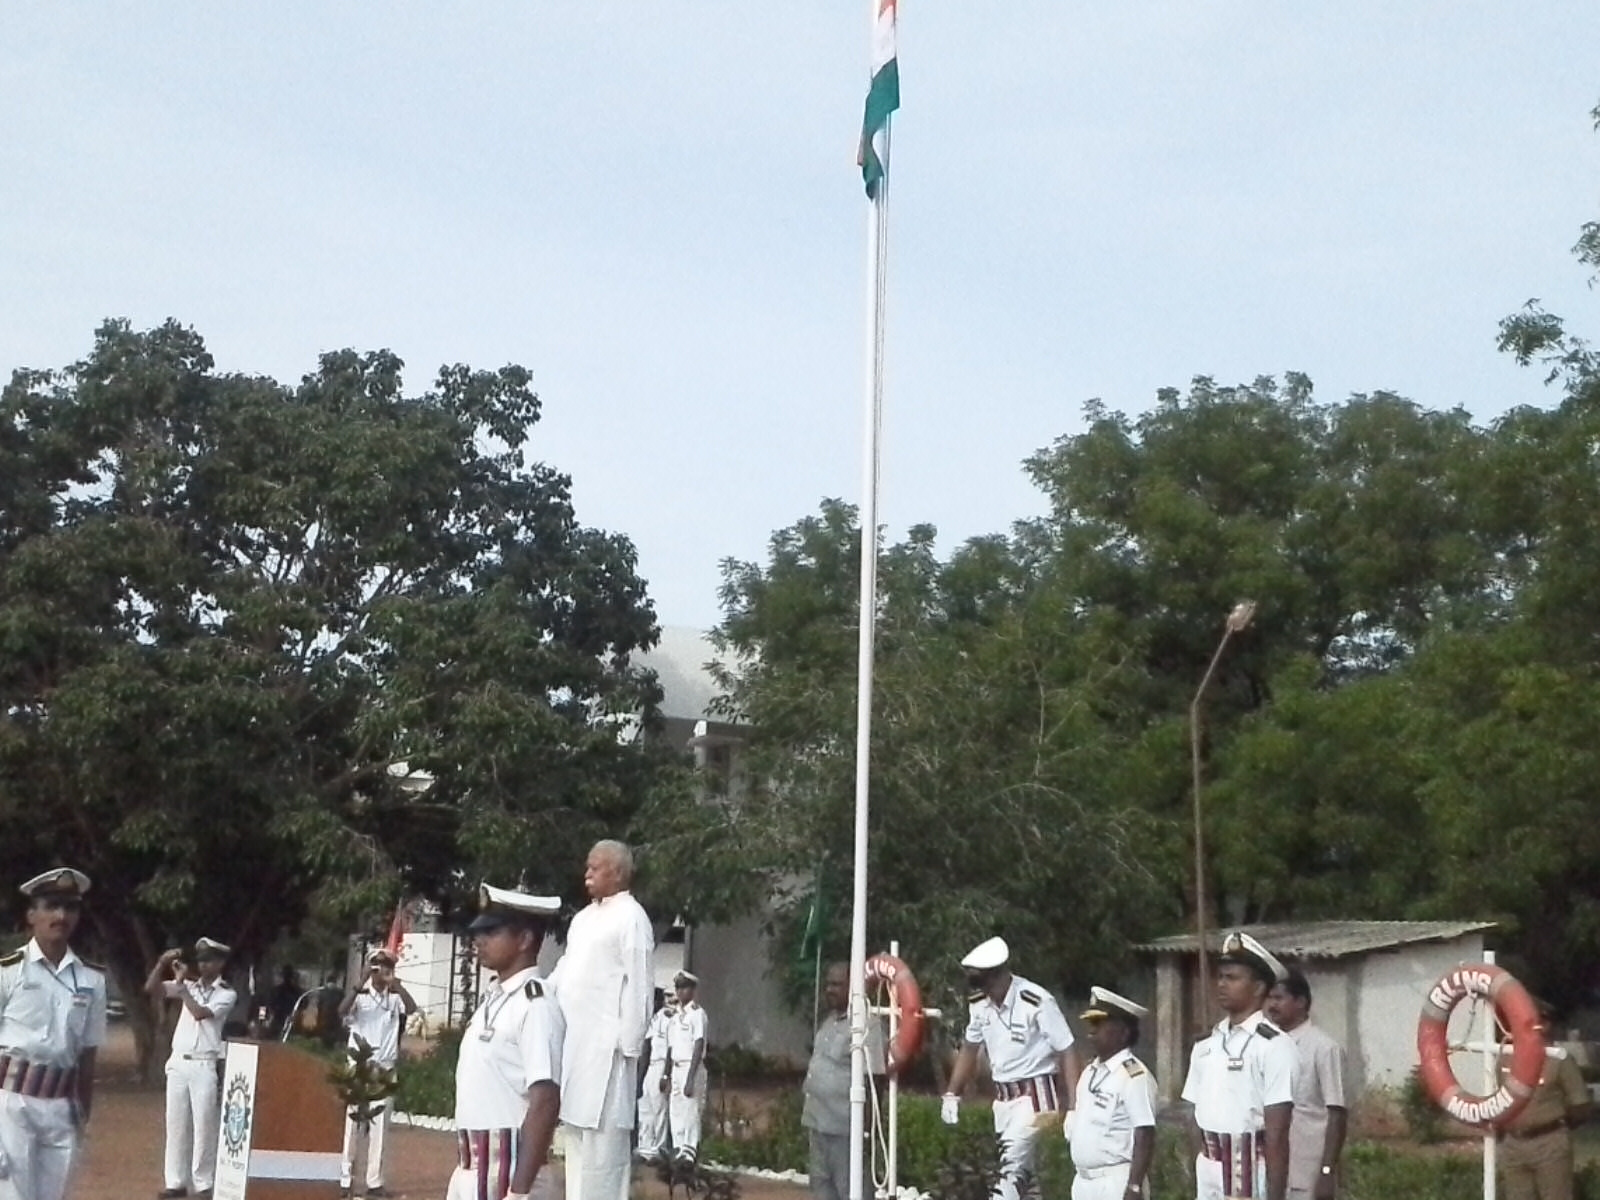 RSS Sarsanghachalak hoists National Flag at Madurai